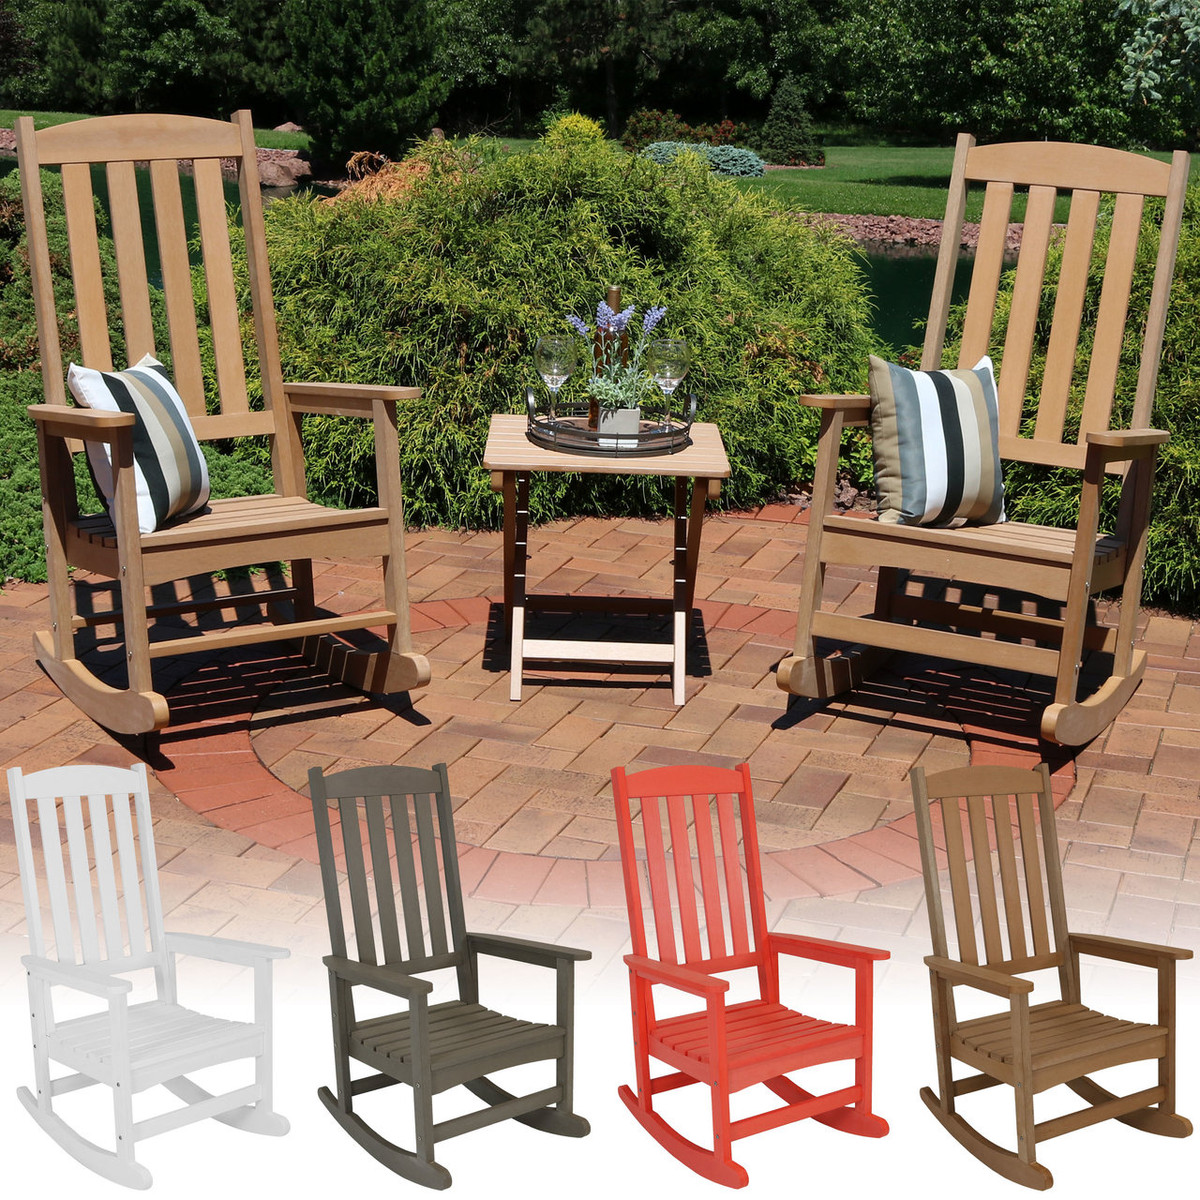 Sunnydaze Rocking Chair Patio Set Two Chairs Table